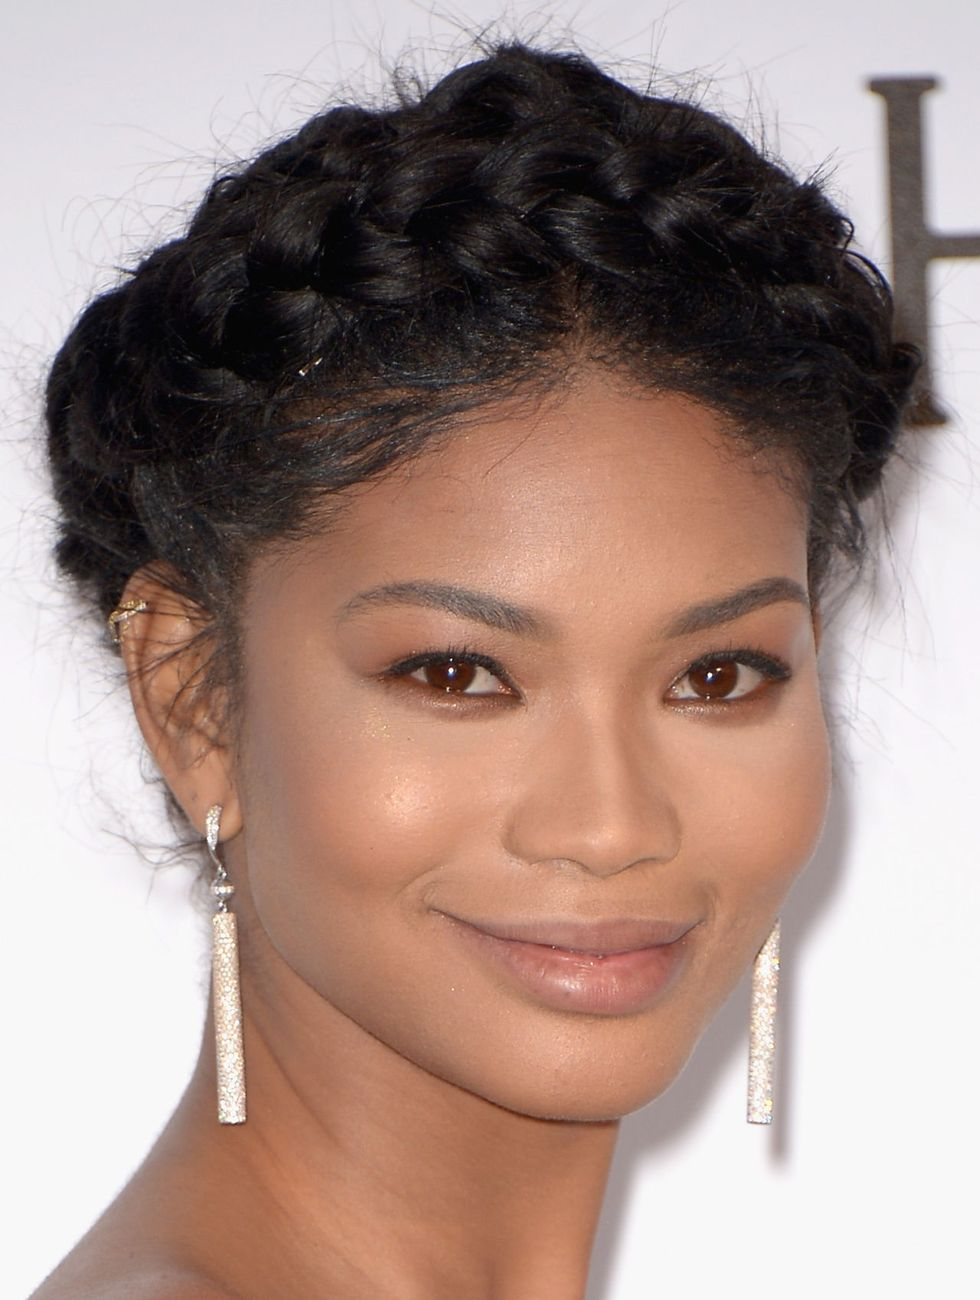 Chanel Iman The supermodel looks elegant in a braided crown fit for the red carpet.